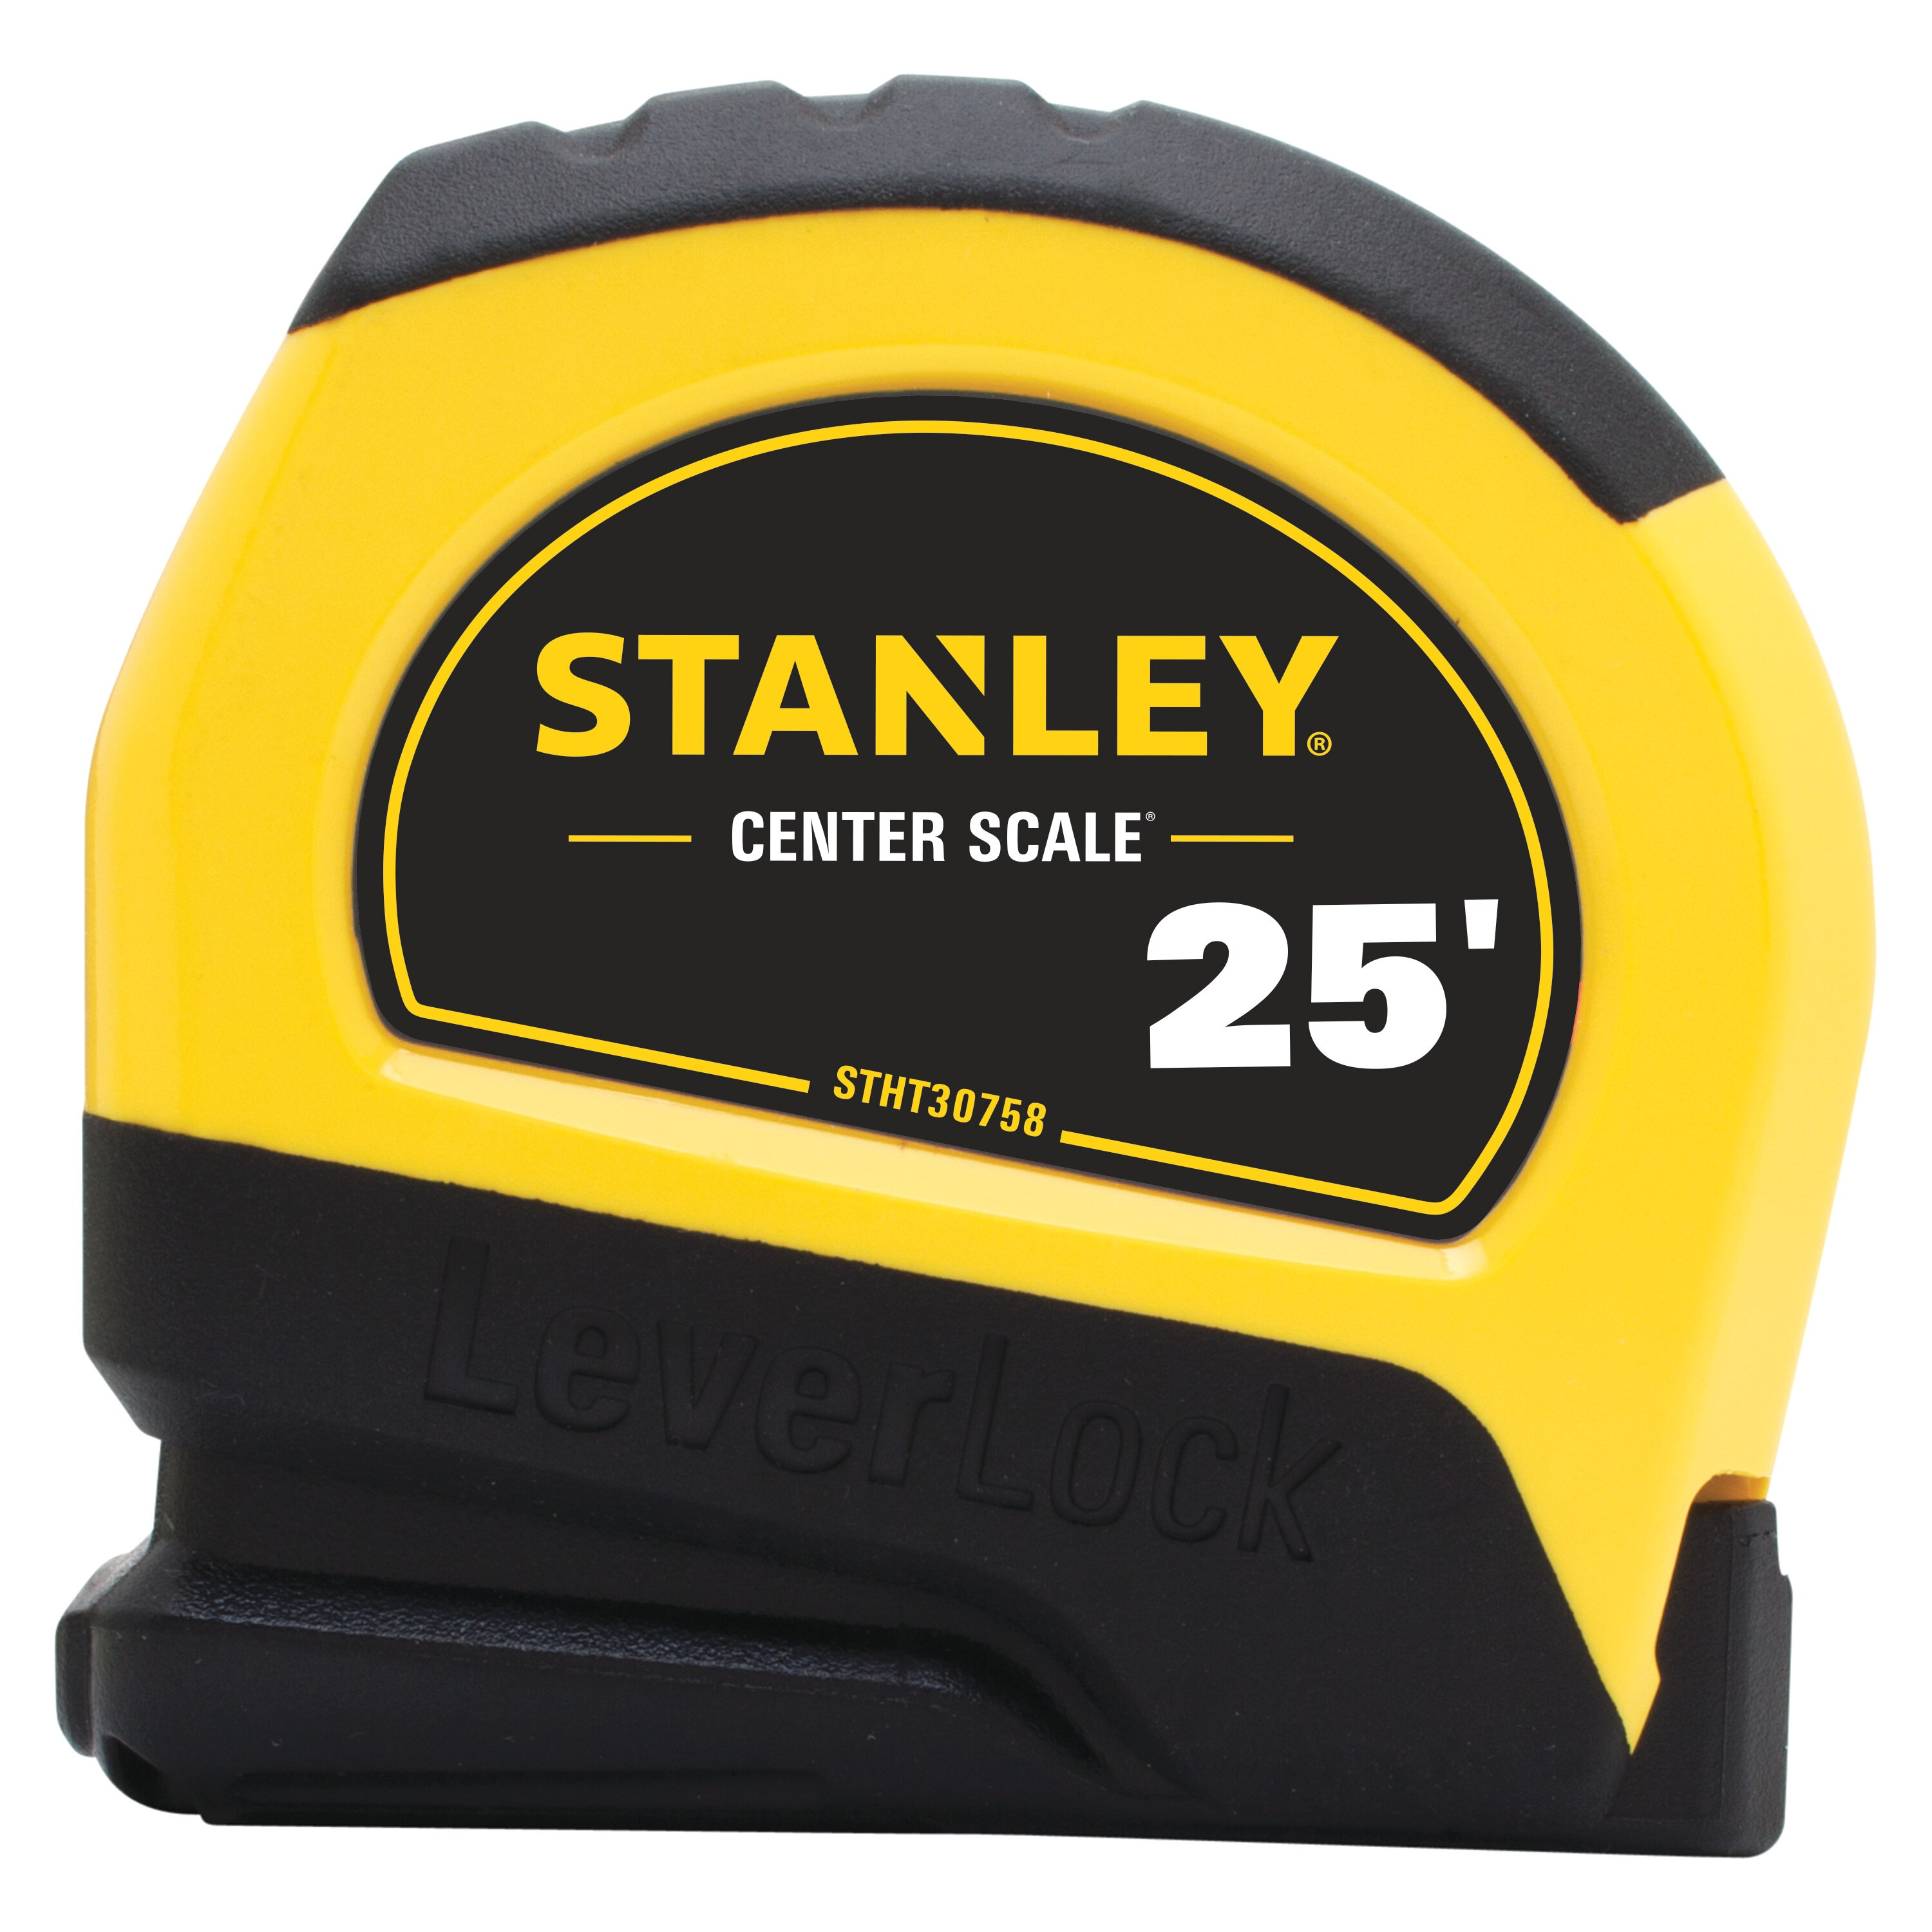 Stanley Tools - 25 ft Center Read LEVERLOCK Tape Measure - STHT30758L